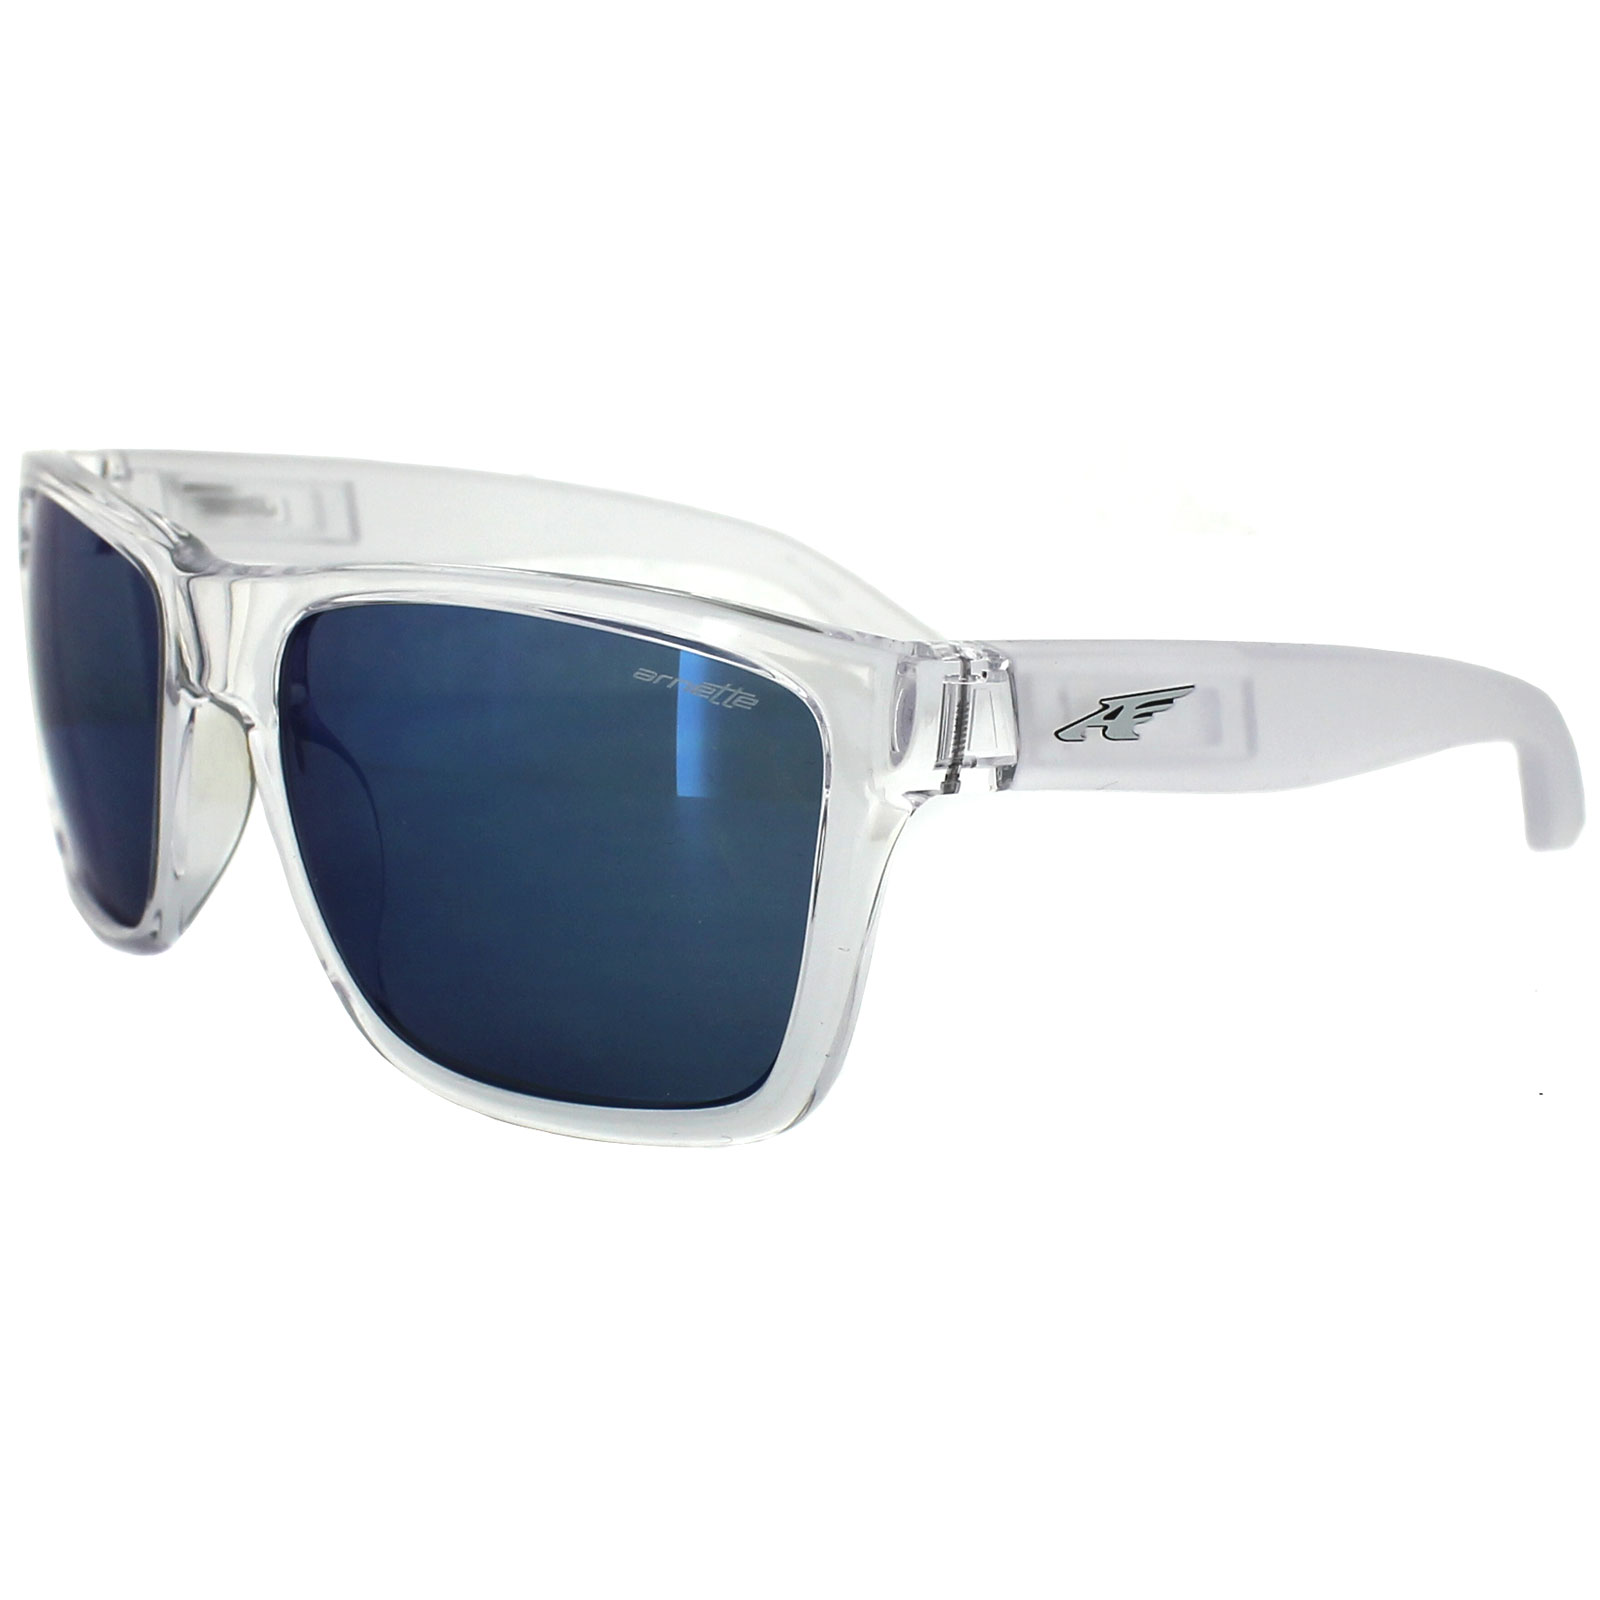 Arnette Sunglasses 4177 Witch Doctor 215855 Clear Blue ...